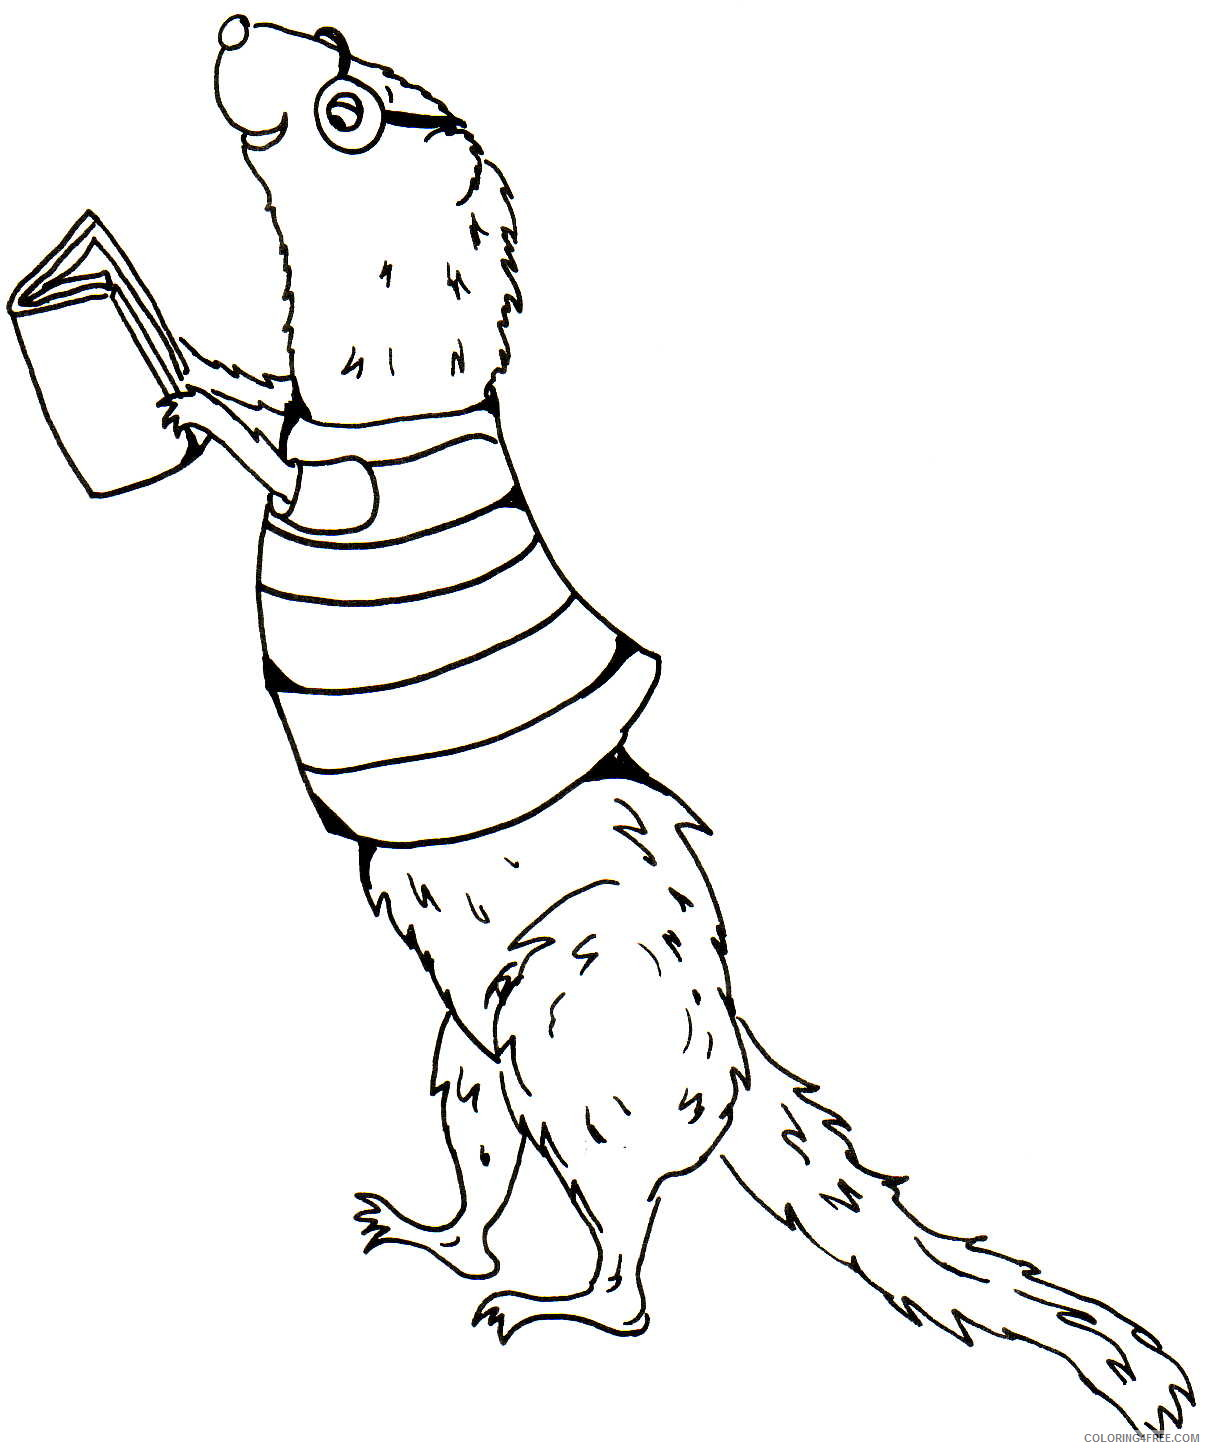 Ferret Coloring Pages ferret 17 jpg Printable Coloring4free